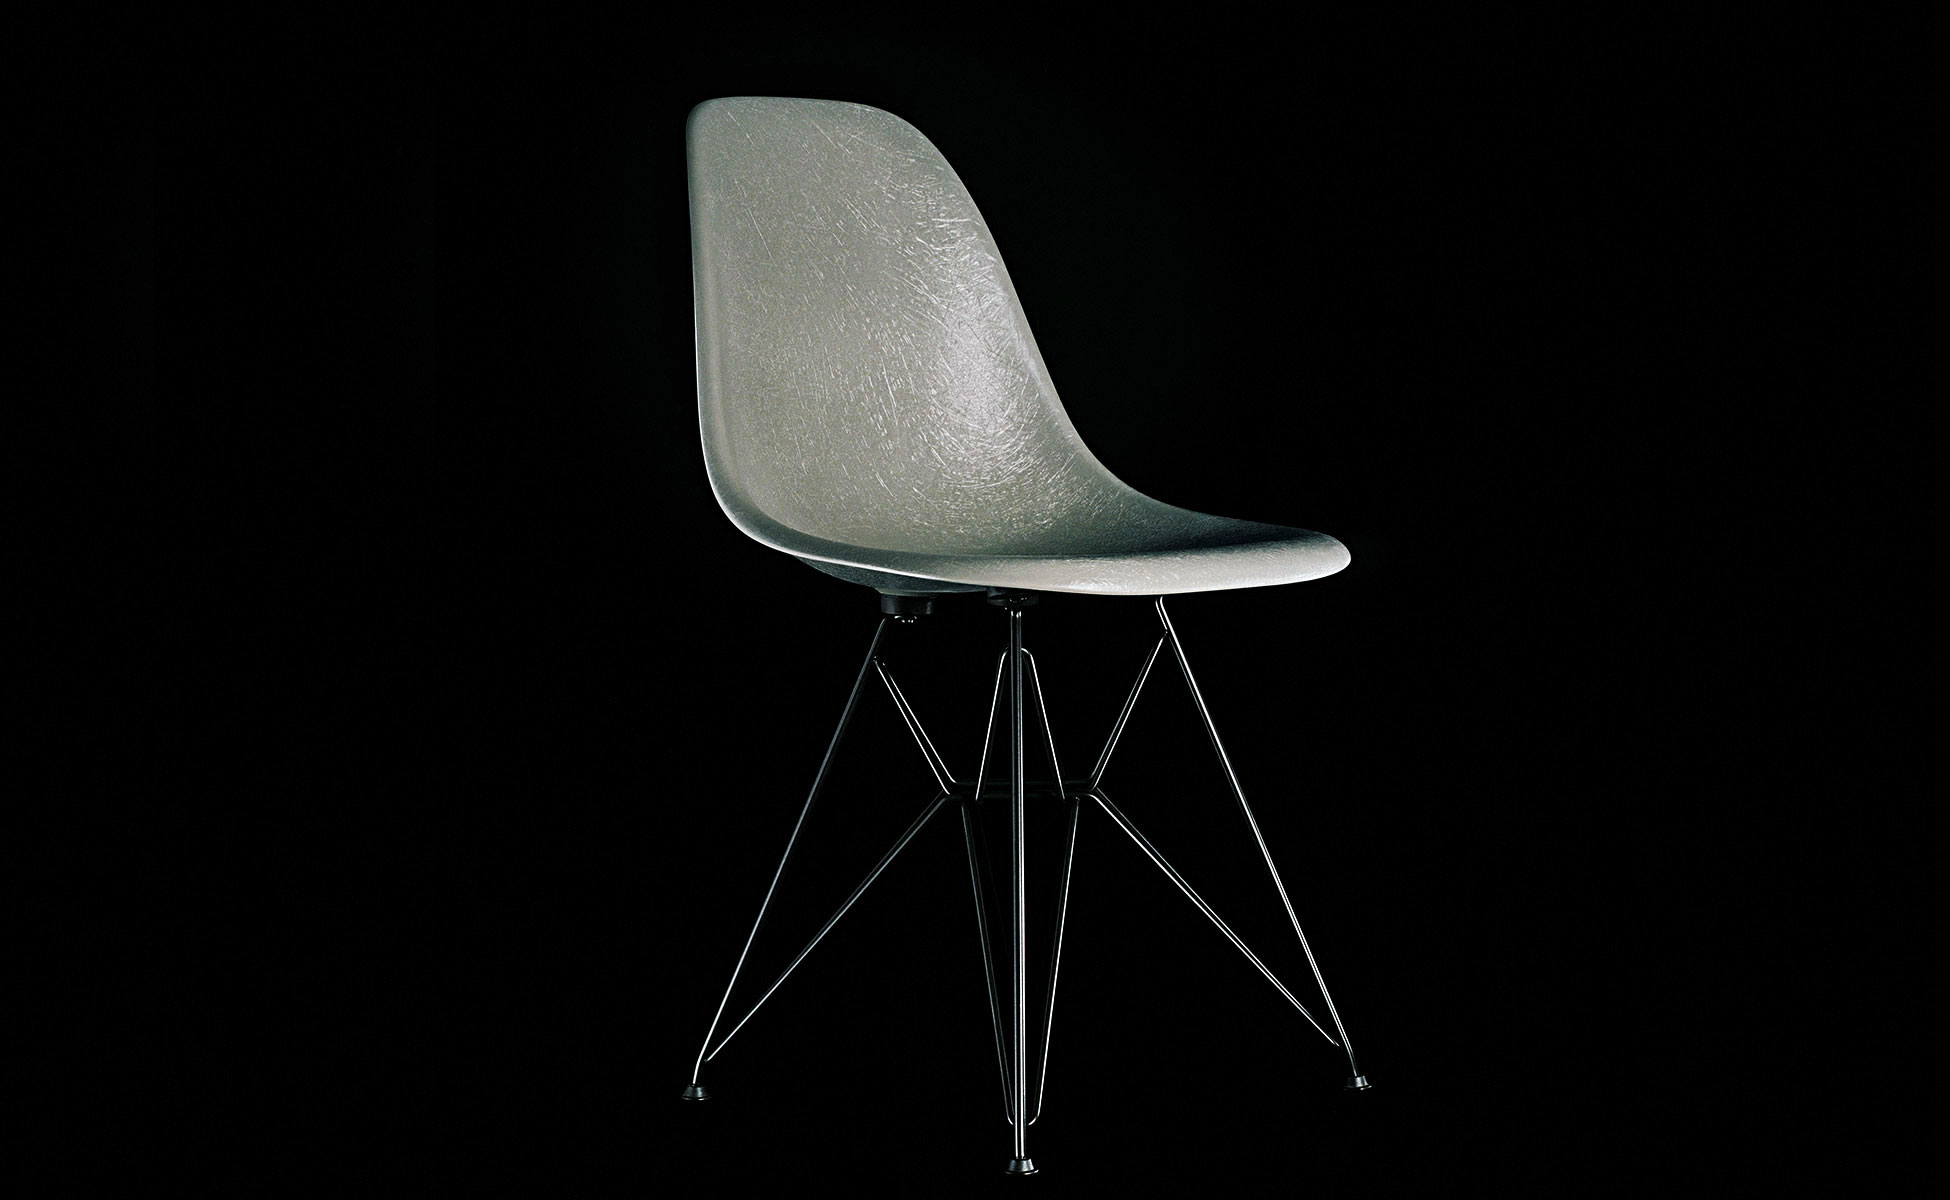 vitra eames fiberglass chair berlin steidten+ elephant hide grey